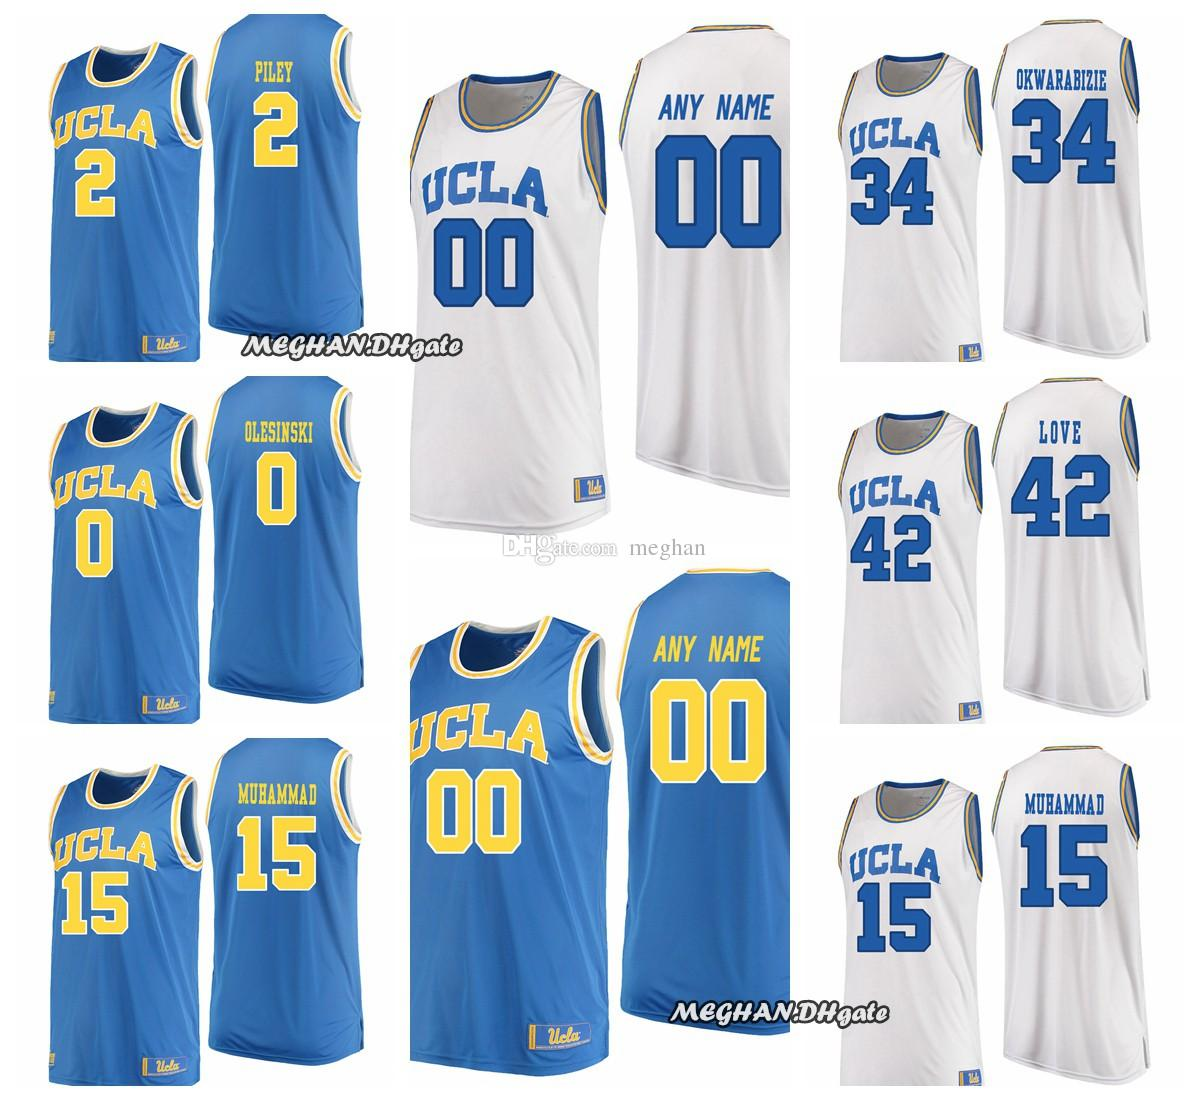 SMITH RILEY Custom Men Women Youth OLESINSKI Jersey UCLA UA College ... 58795237f